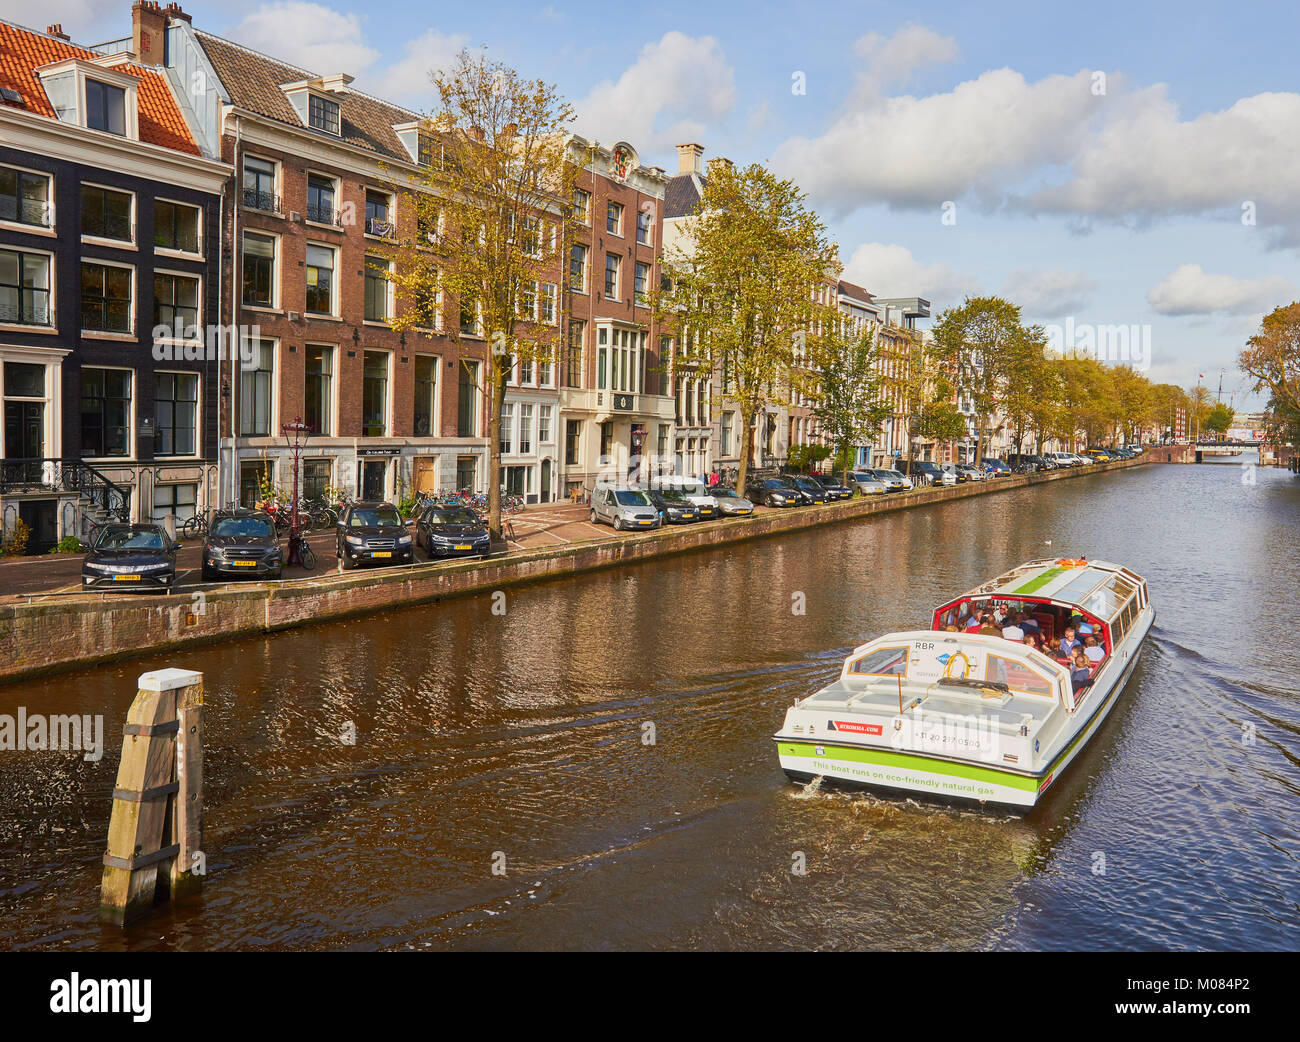 An eco-friendly tourist canal boat which runs on natural gas, Amsterdam, Netherlands - Stock Image